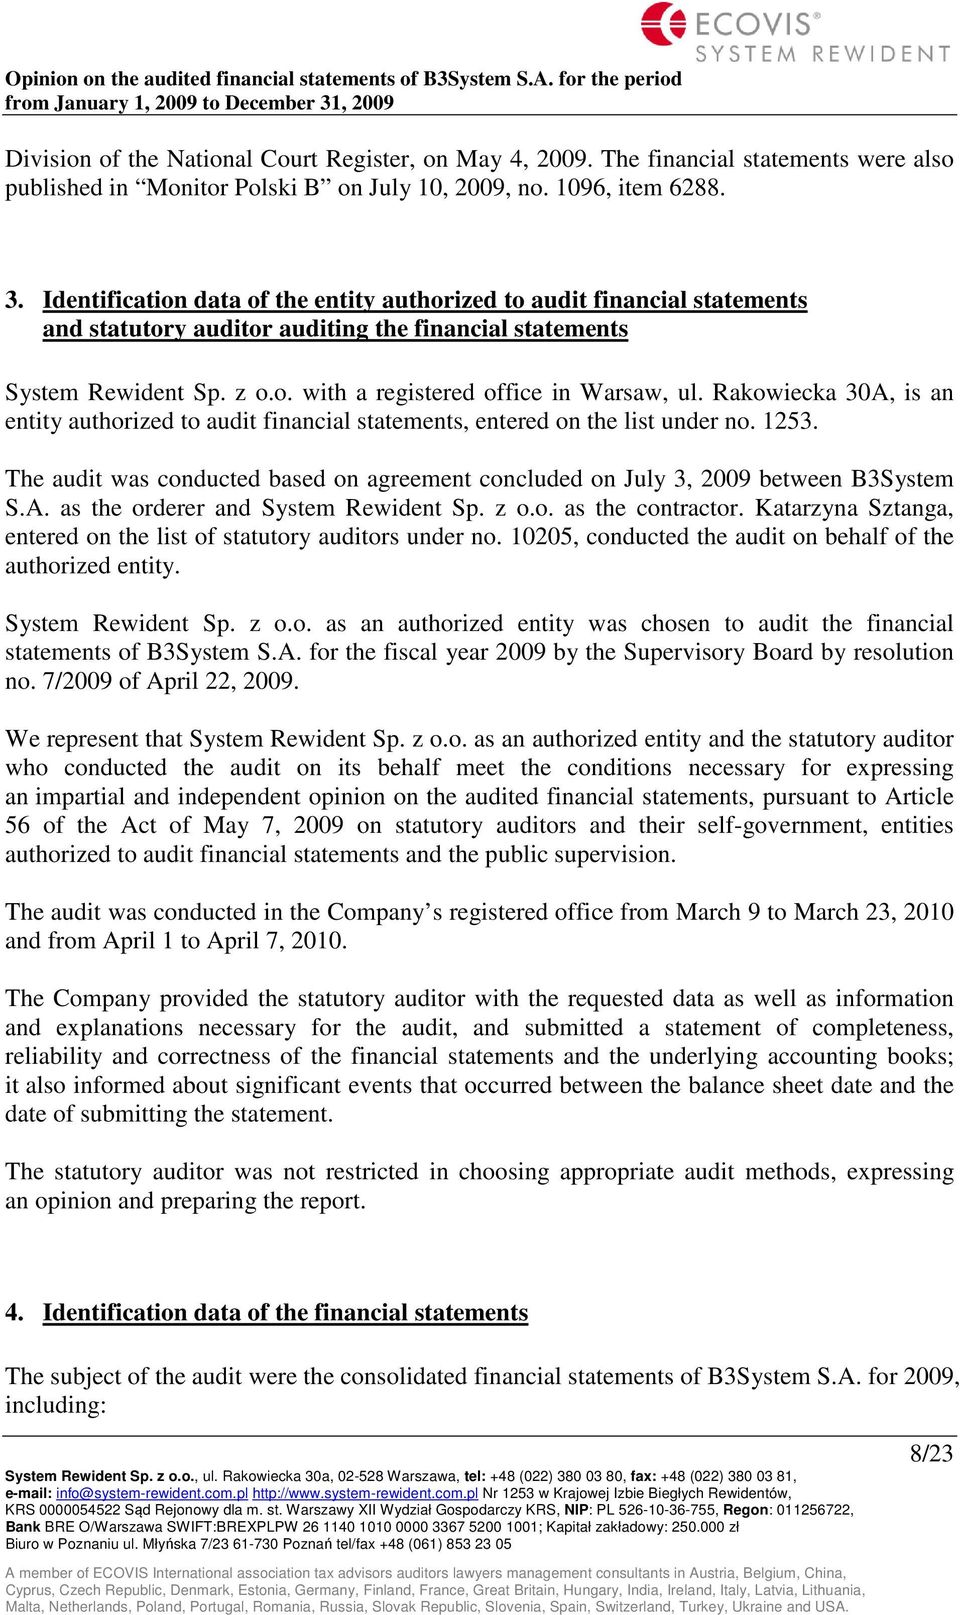 Rakowiecka 30A, is an entity authorized to audit financial statements, entered on the list under no. 1253. The audit was conducted based on agreement concluded on July 3, 2009 between B3System S.A. as the orderer and System Rewident Sp.